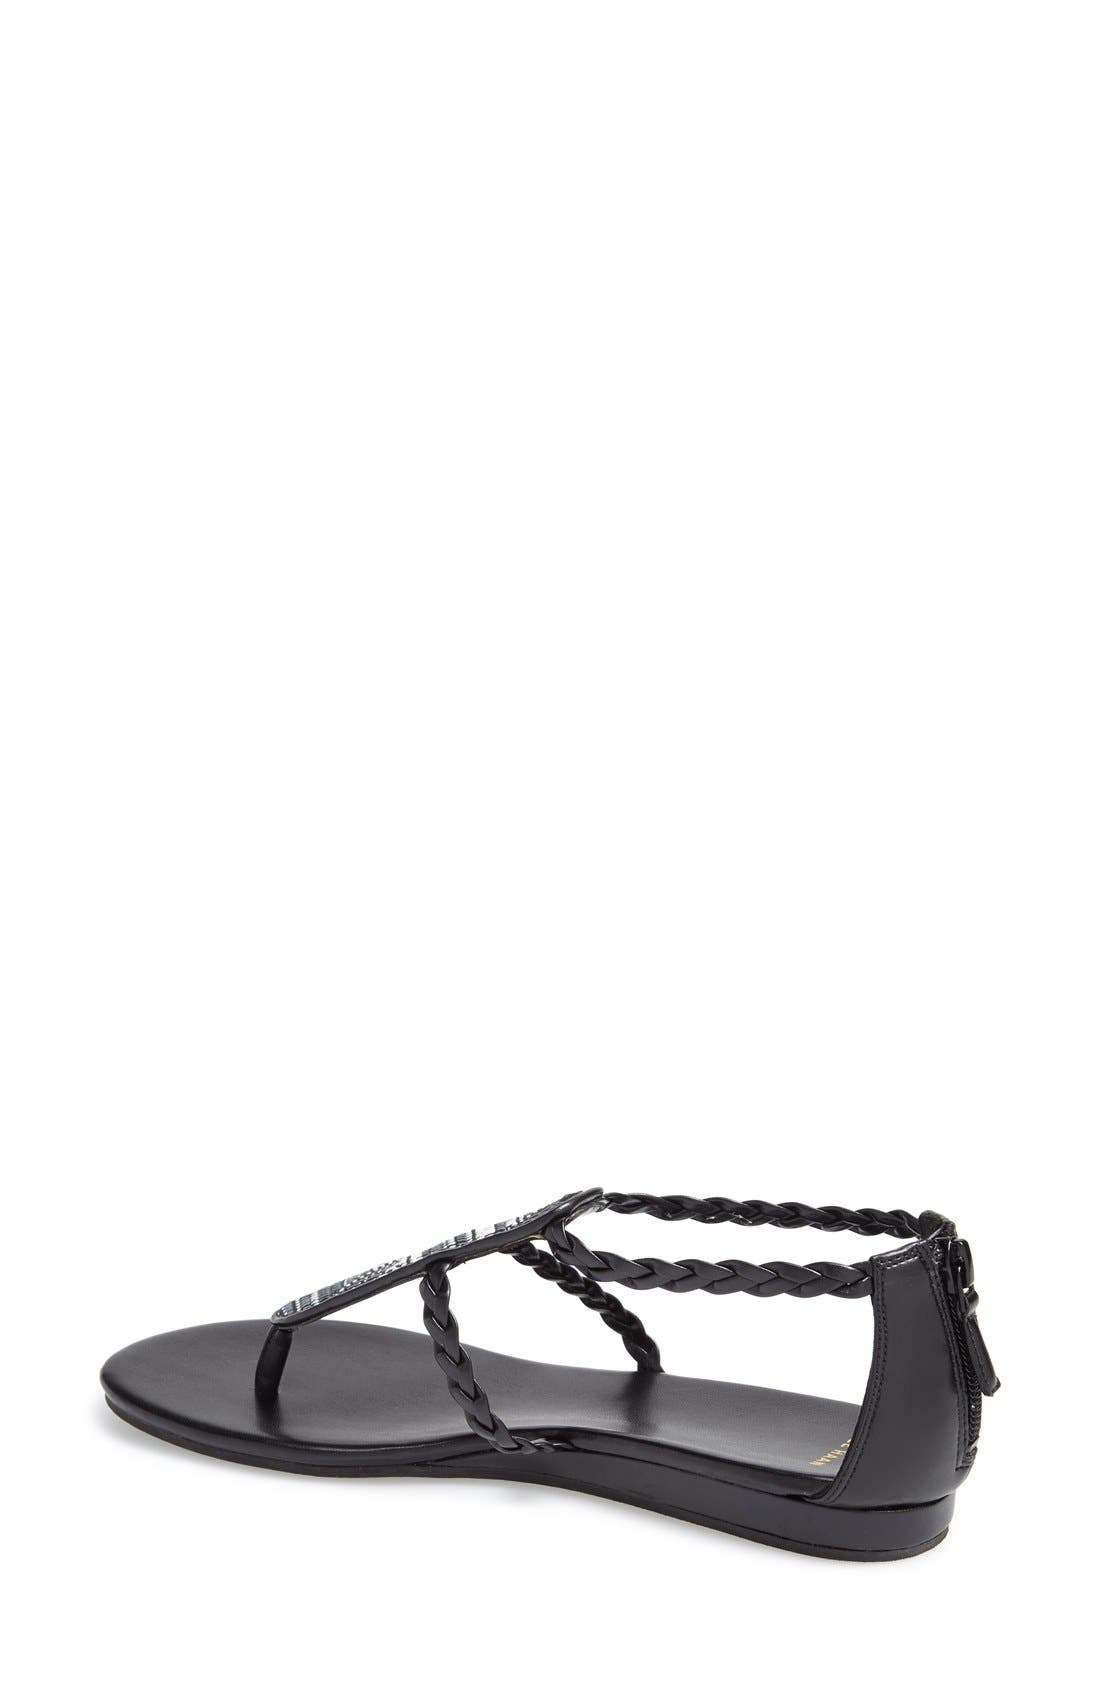 'Abbe' Sandal,                             Alternate thumbnail 2, color,                             Black/ White Leather